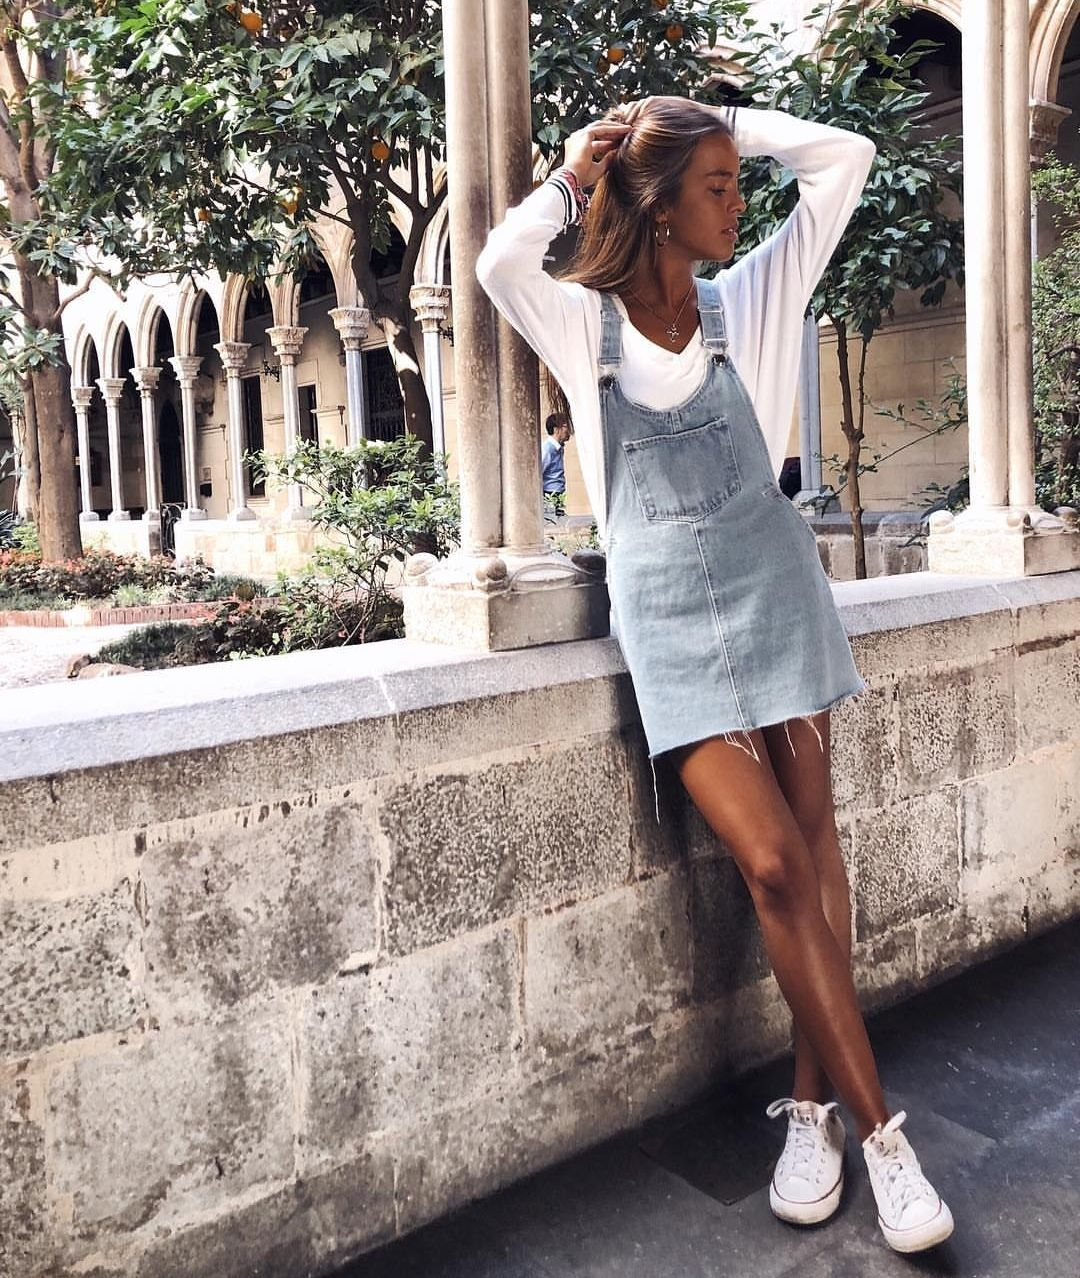 X D Y L A N A Spring Fashion Outfits Casual Fall Outfits Fashion